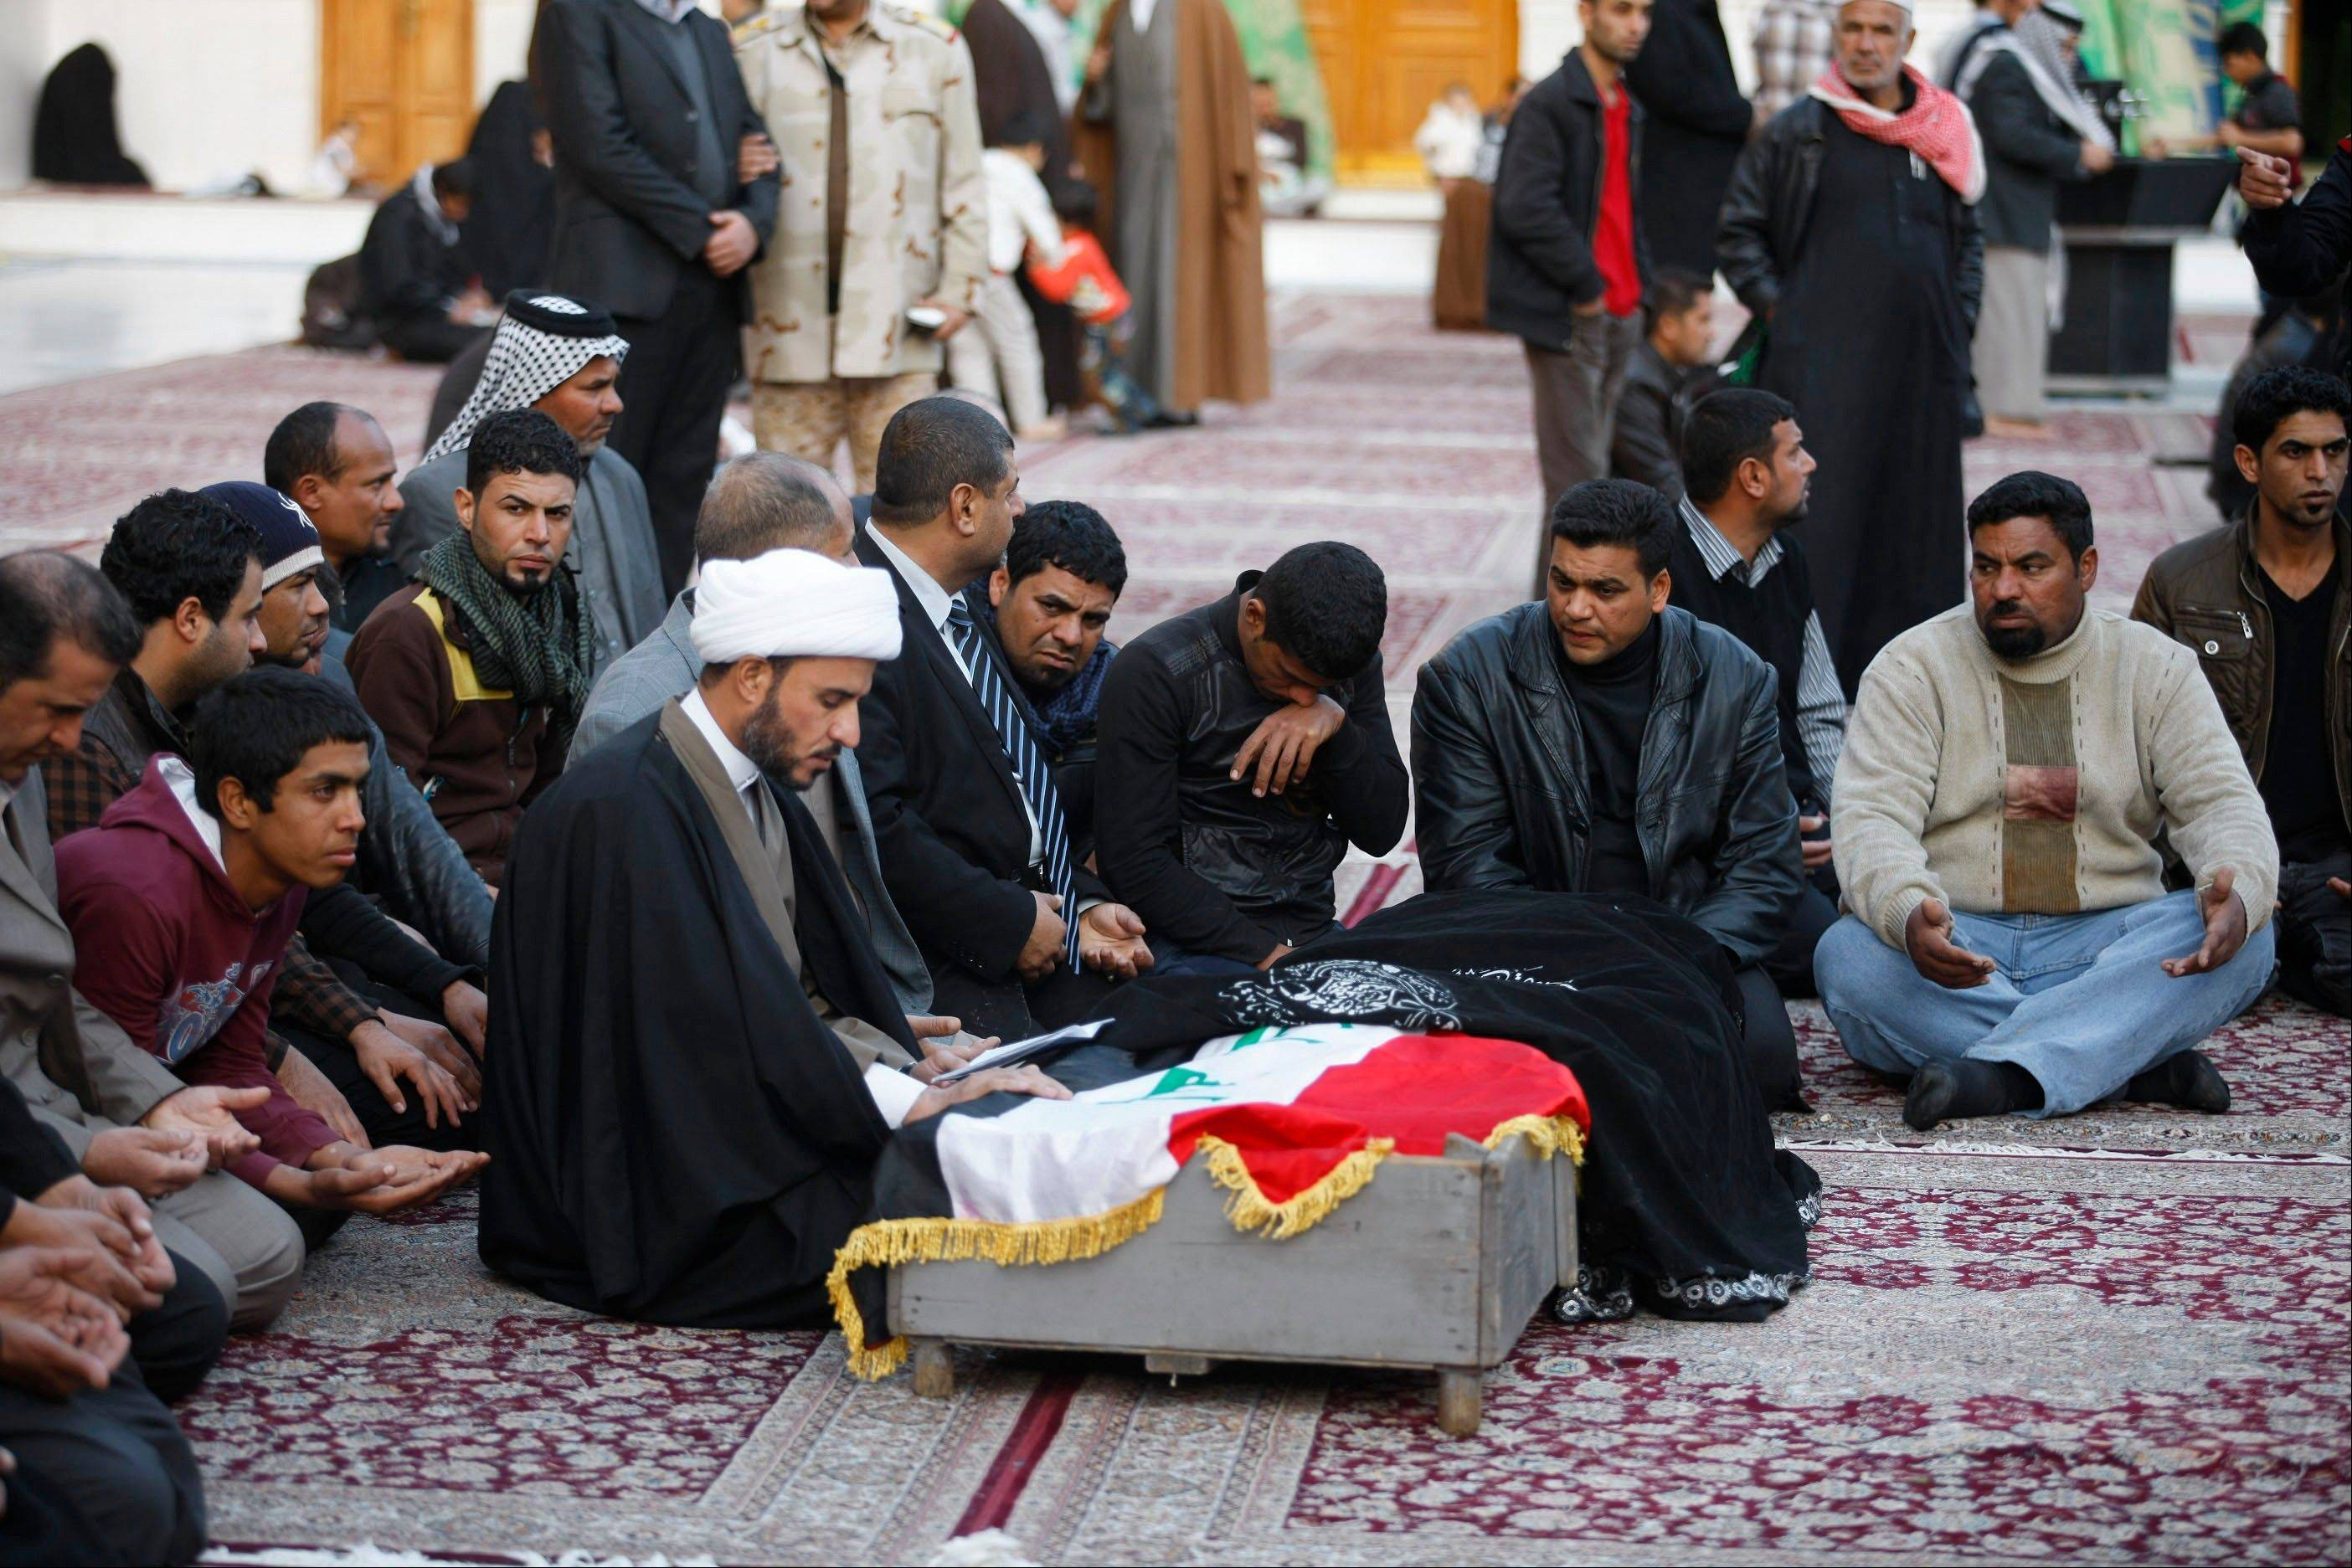 Mourners pray over the coffin of a man killed in a bomb attack during a funeral in the Shiite holy city of Najaf, 100 miles south of Baghdad, Iraq, Sunday. Violence across Iraq, including a series of car bombings and fighting between militants and government troops over control of the country's contested Anbar province, killed dozens Saturday, officials said.